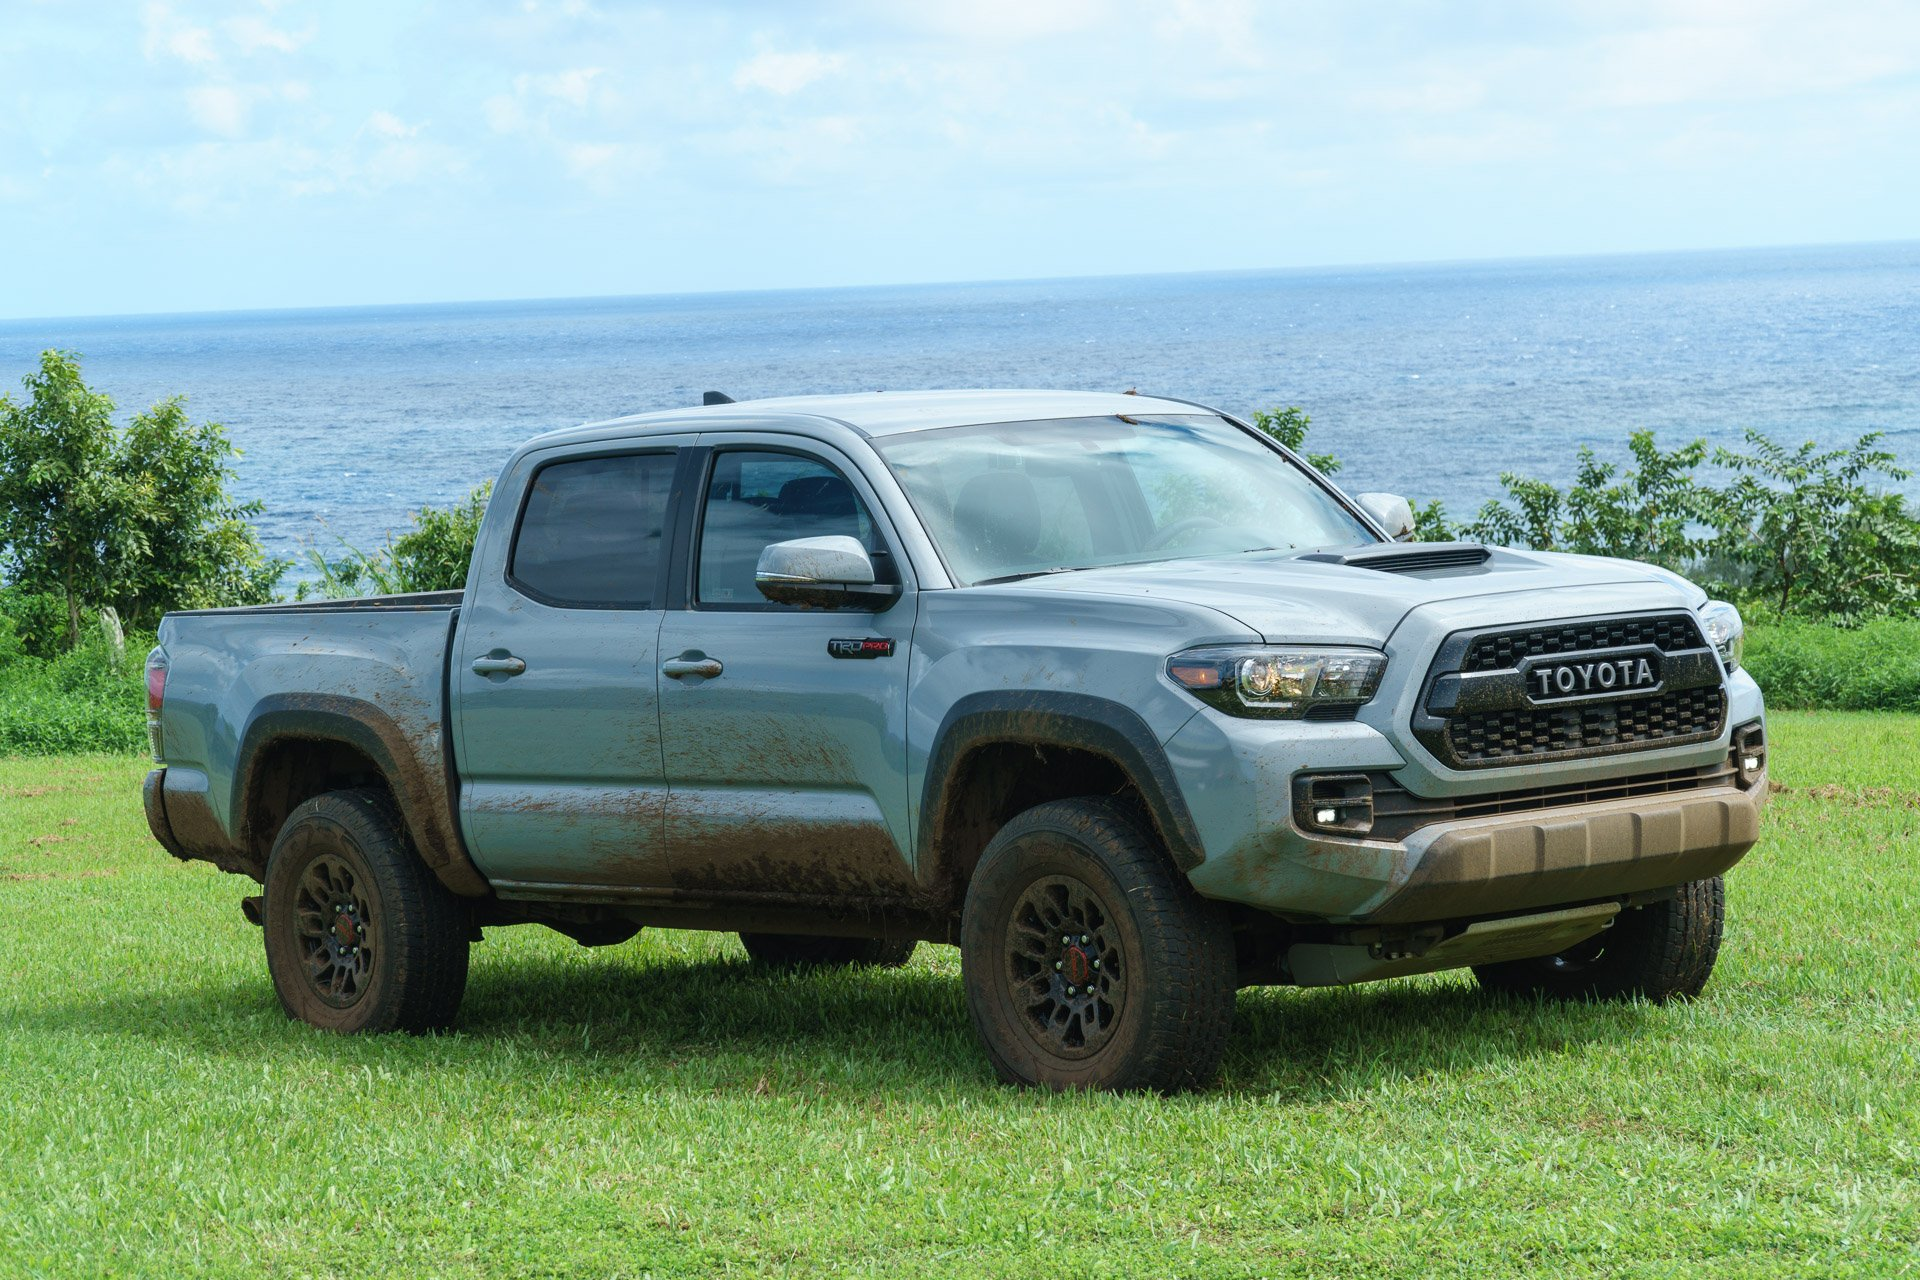 New Toyota Tacoma >> Off-Road in Hawaii with the 2017 Toyota Tacoma TRD Pro - 95 Octane